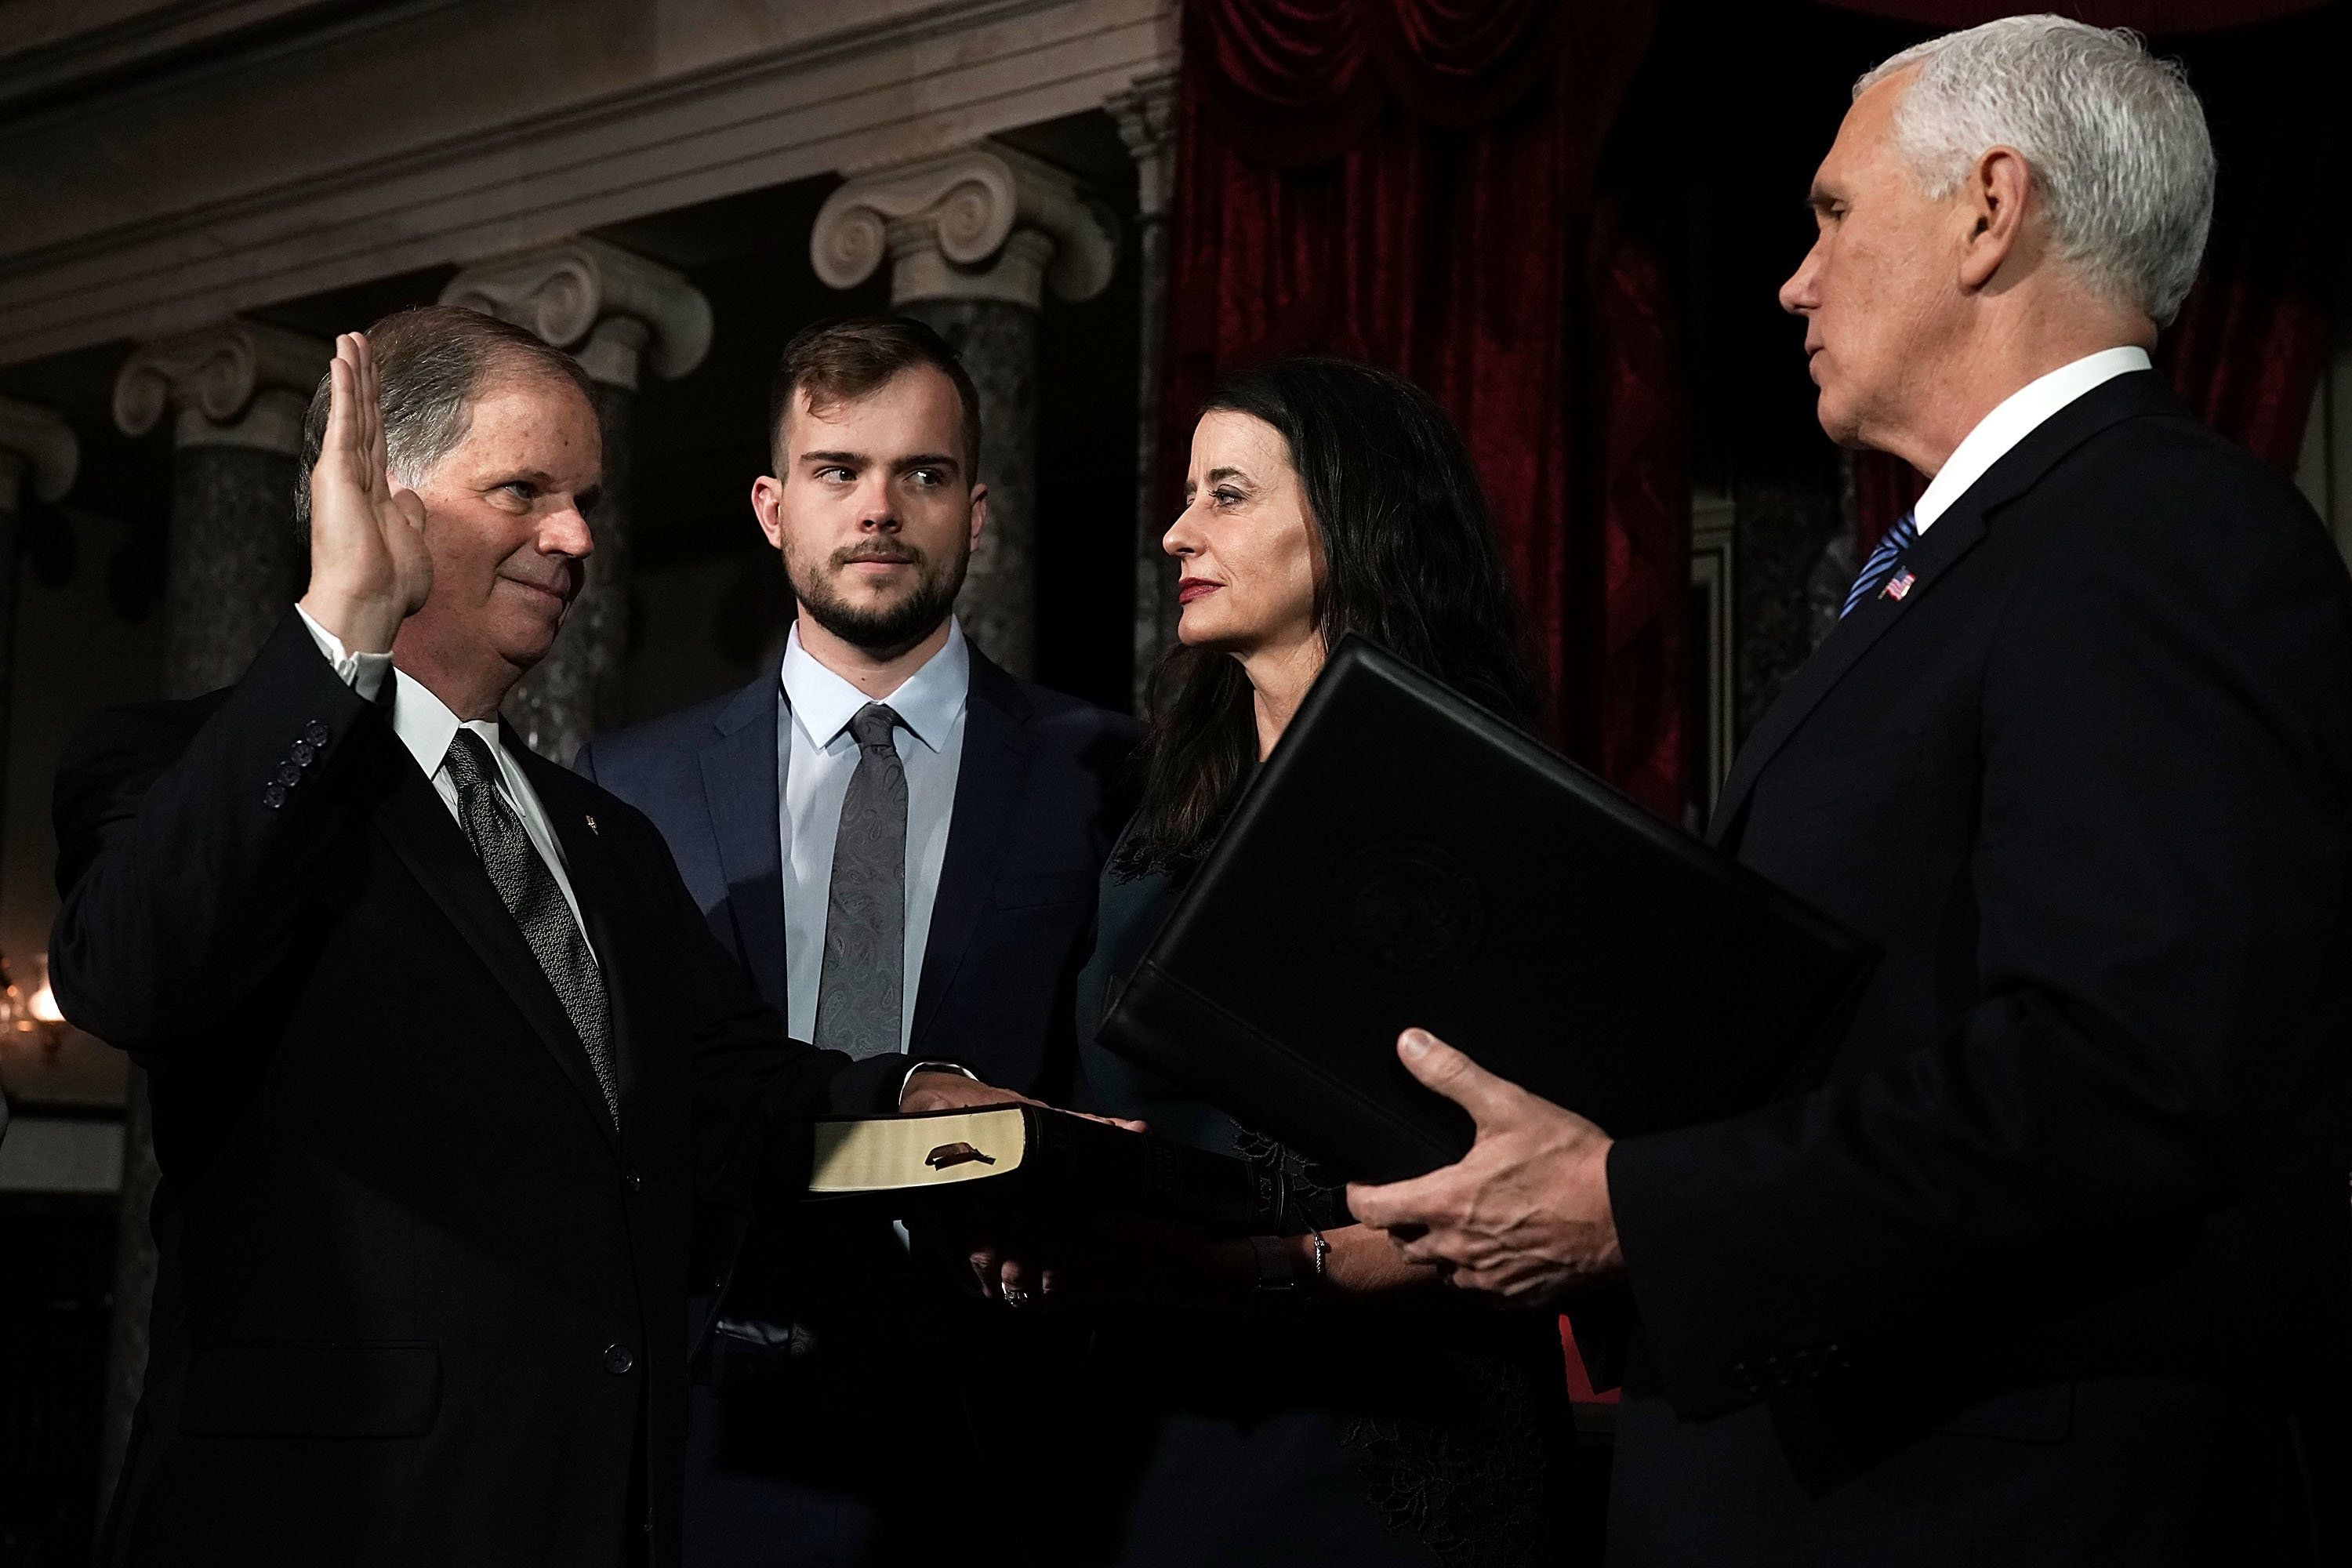 WASHINGTON, DC - JANUARY 03:  U.S. Sen. Doug Jones (D-AL) (L) participates in a mock swearing-in ceremony with Vice President Mike Pence (R) as Jones' wife Louise (3rd L) and son Carson (2nd L) look on at the Old Senate Chamber of the U.S. Capitol January 3, 2018 in Washington, DC. Jones is the first Democratic senator from Alabama in more than two decades. He defeated Roy Moore leaving Republicans with a 51-49 majority in the U.S. Senate.  (Photo by Alex Wong/Getty Images)